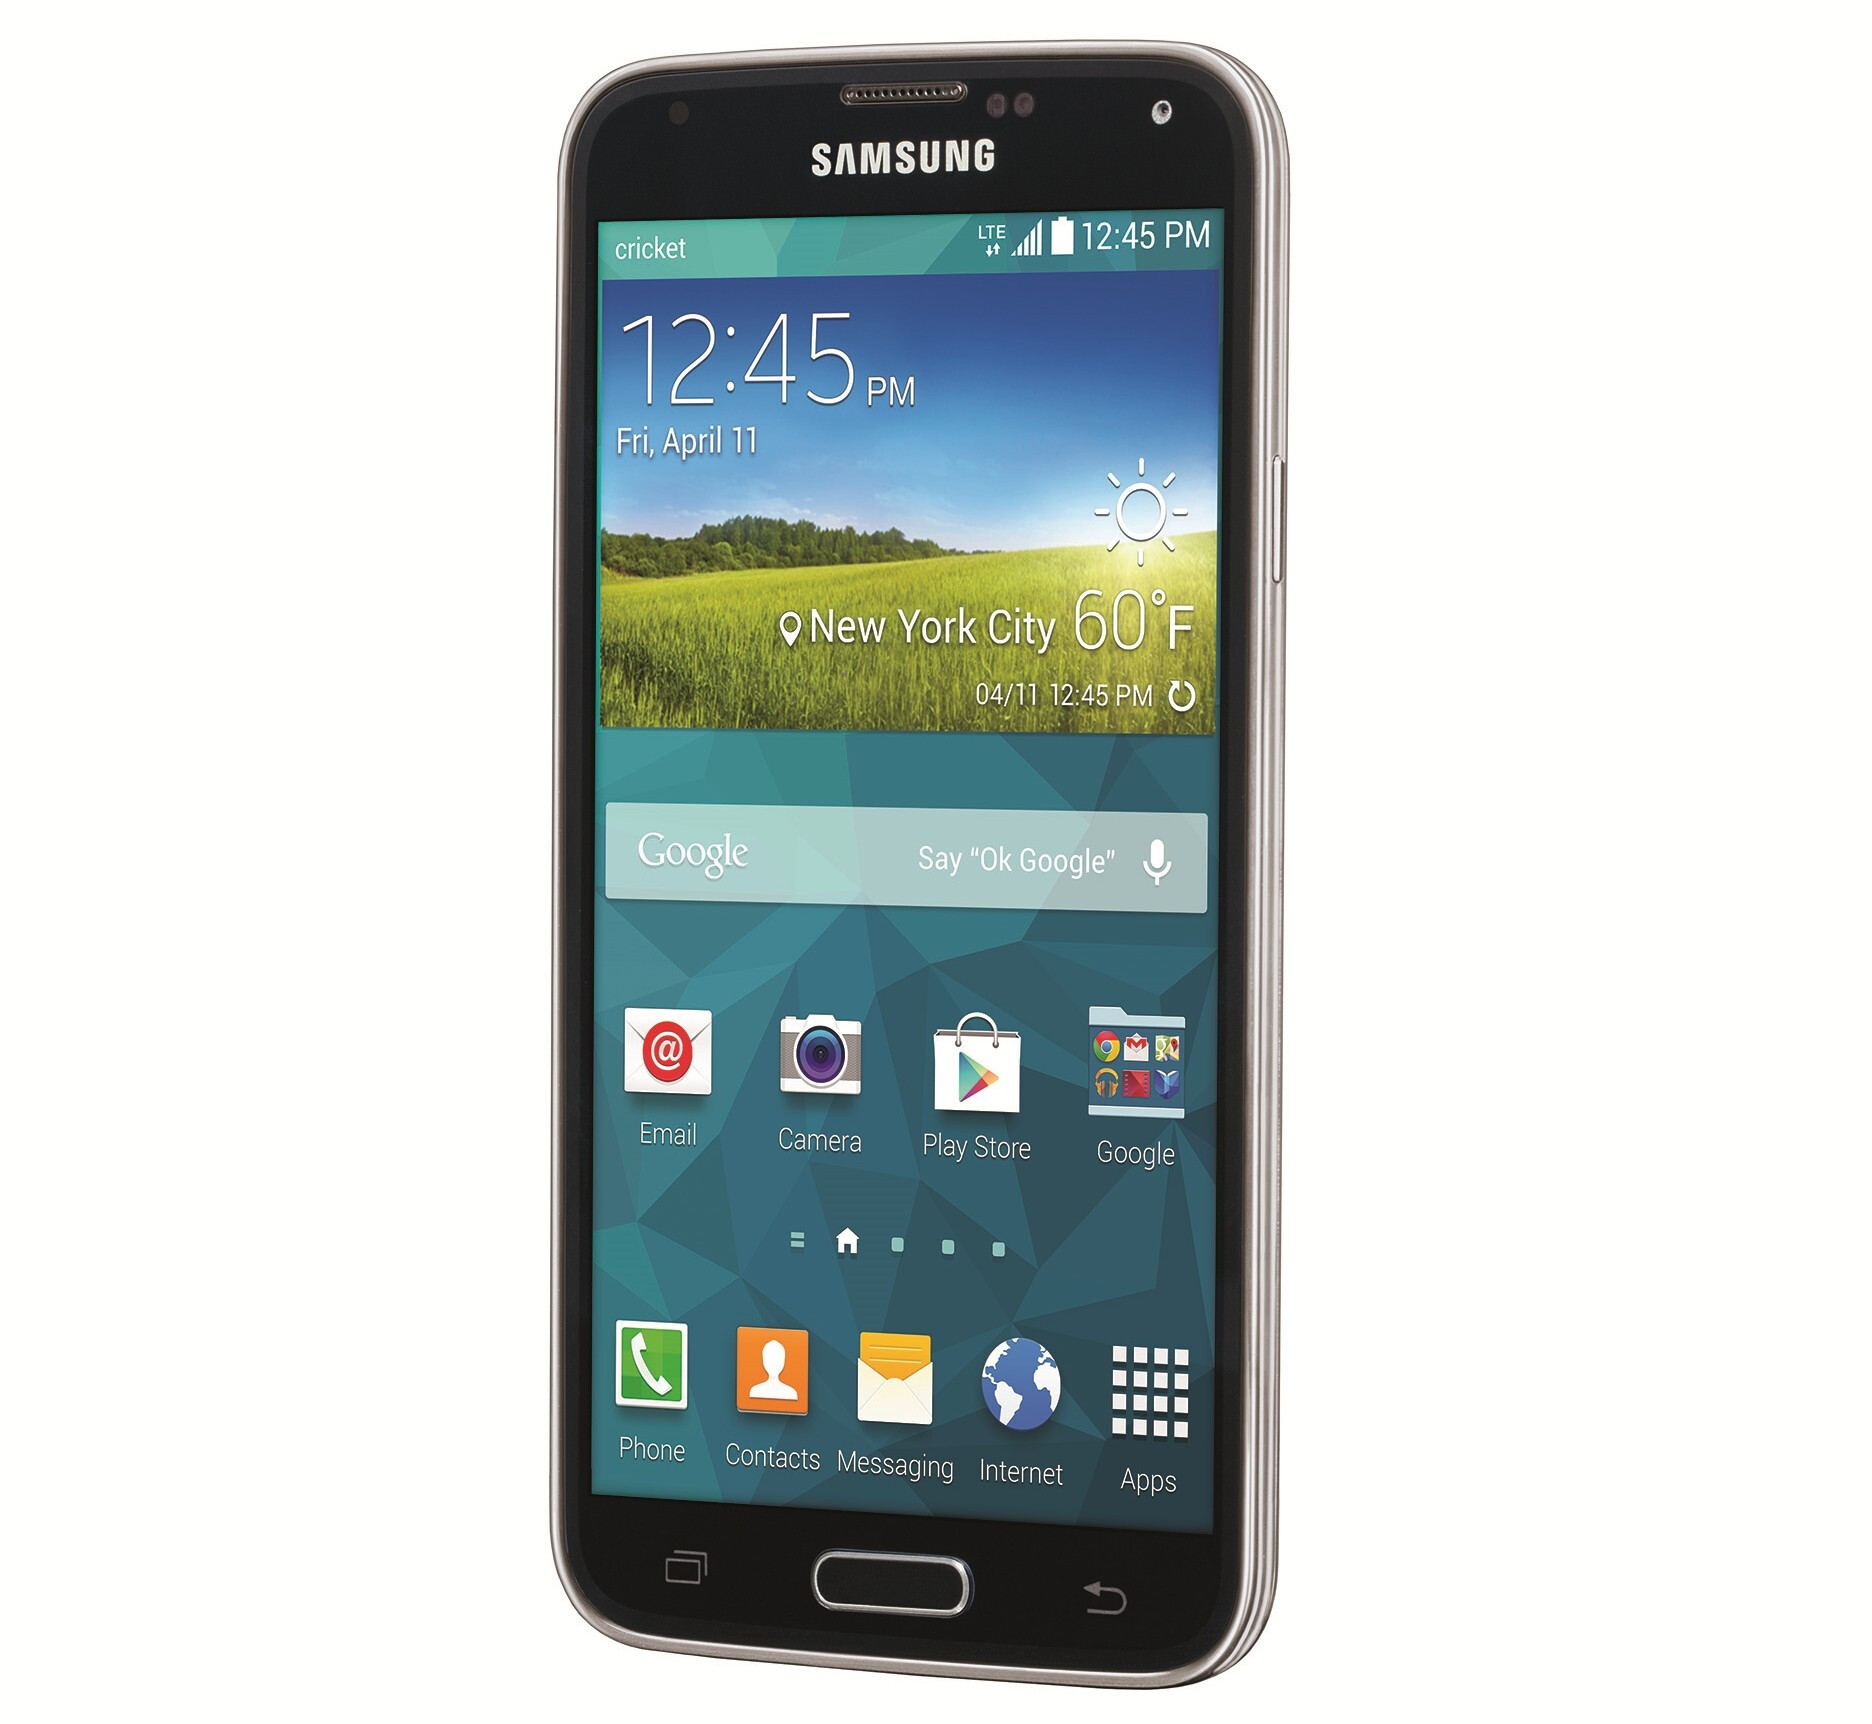 Electronic Samsung Android Phone And Price samsung galaxy s5 will have the best pricing in prepaid at cricket crickets s5